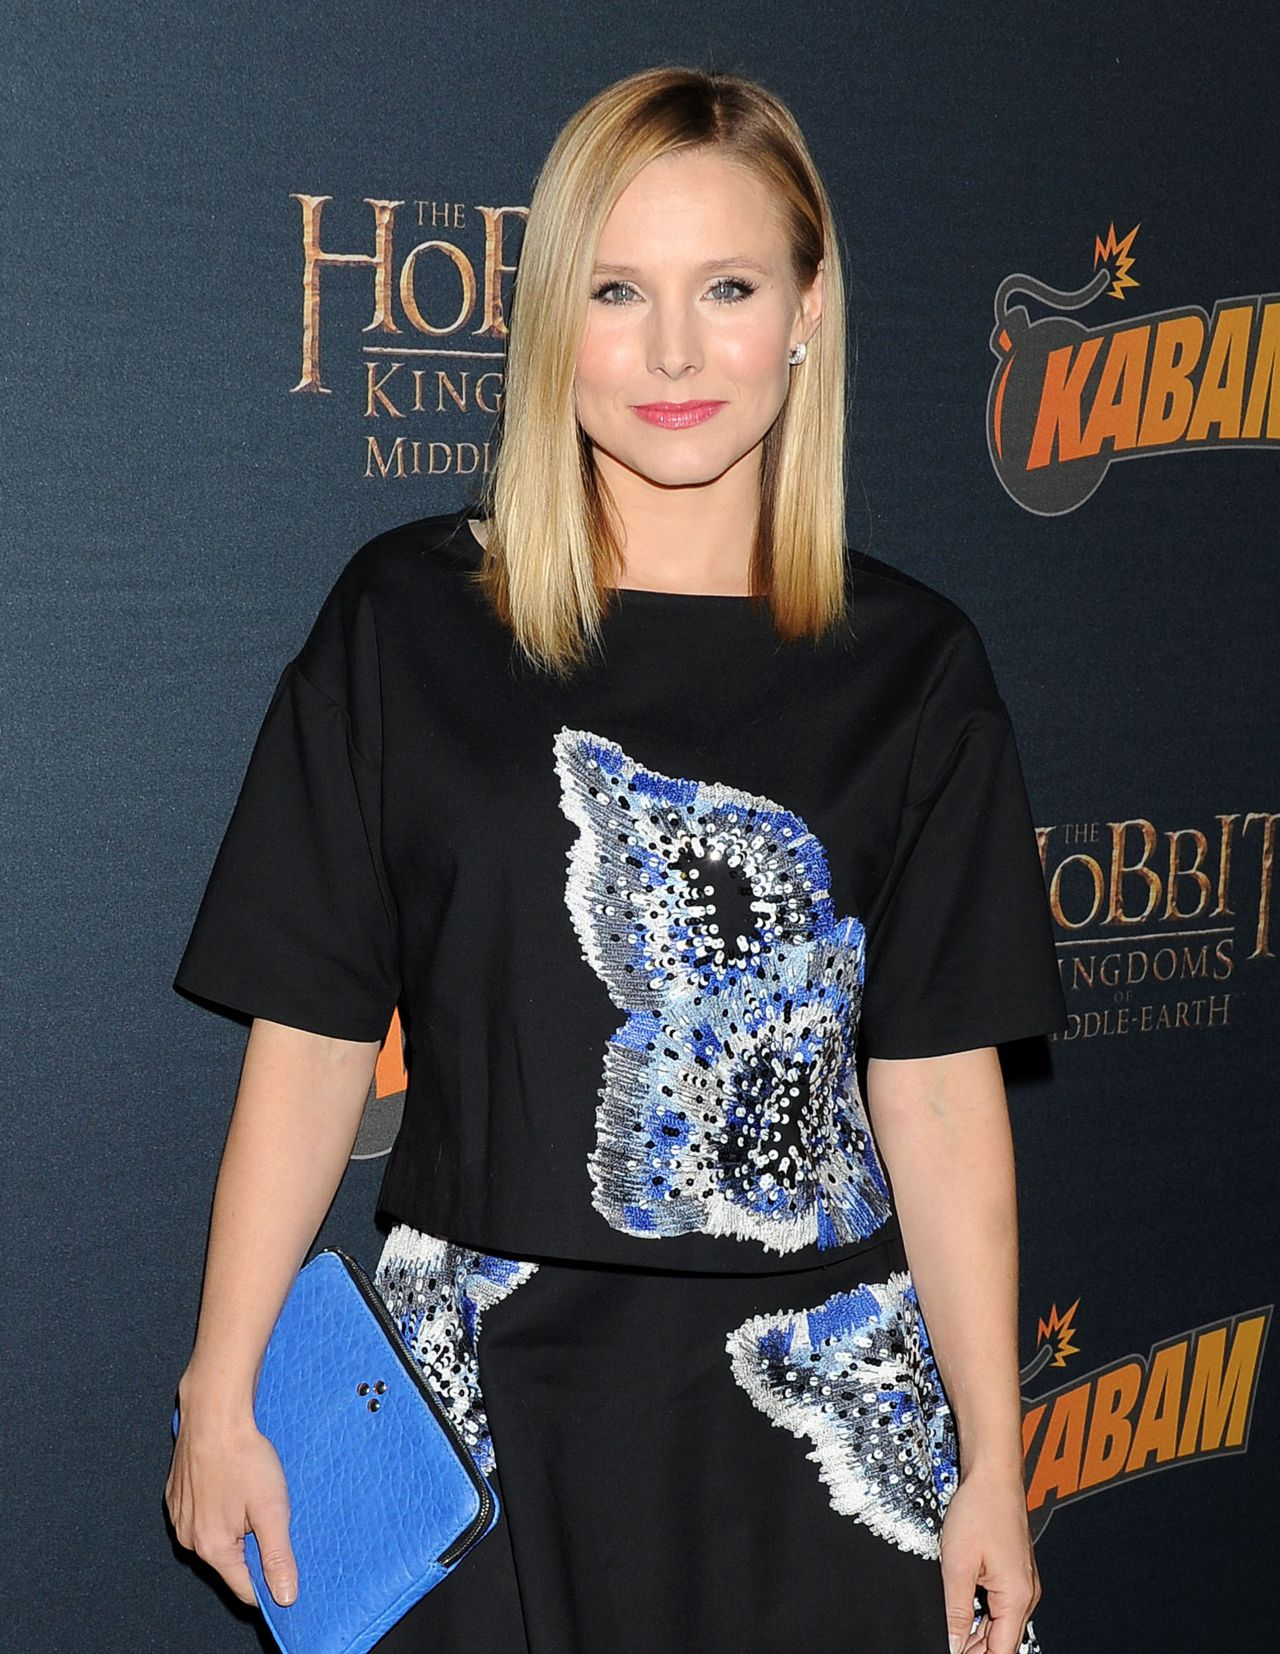 Kristen Bell at THE HOBBIT: THE DESOLATION OF SMAUG Expansion Kabam Mobile Game Party - Dec. 2013